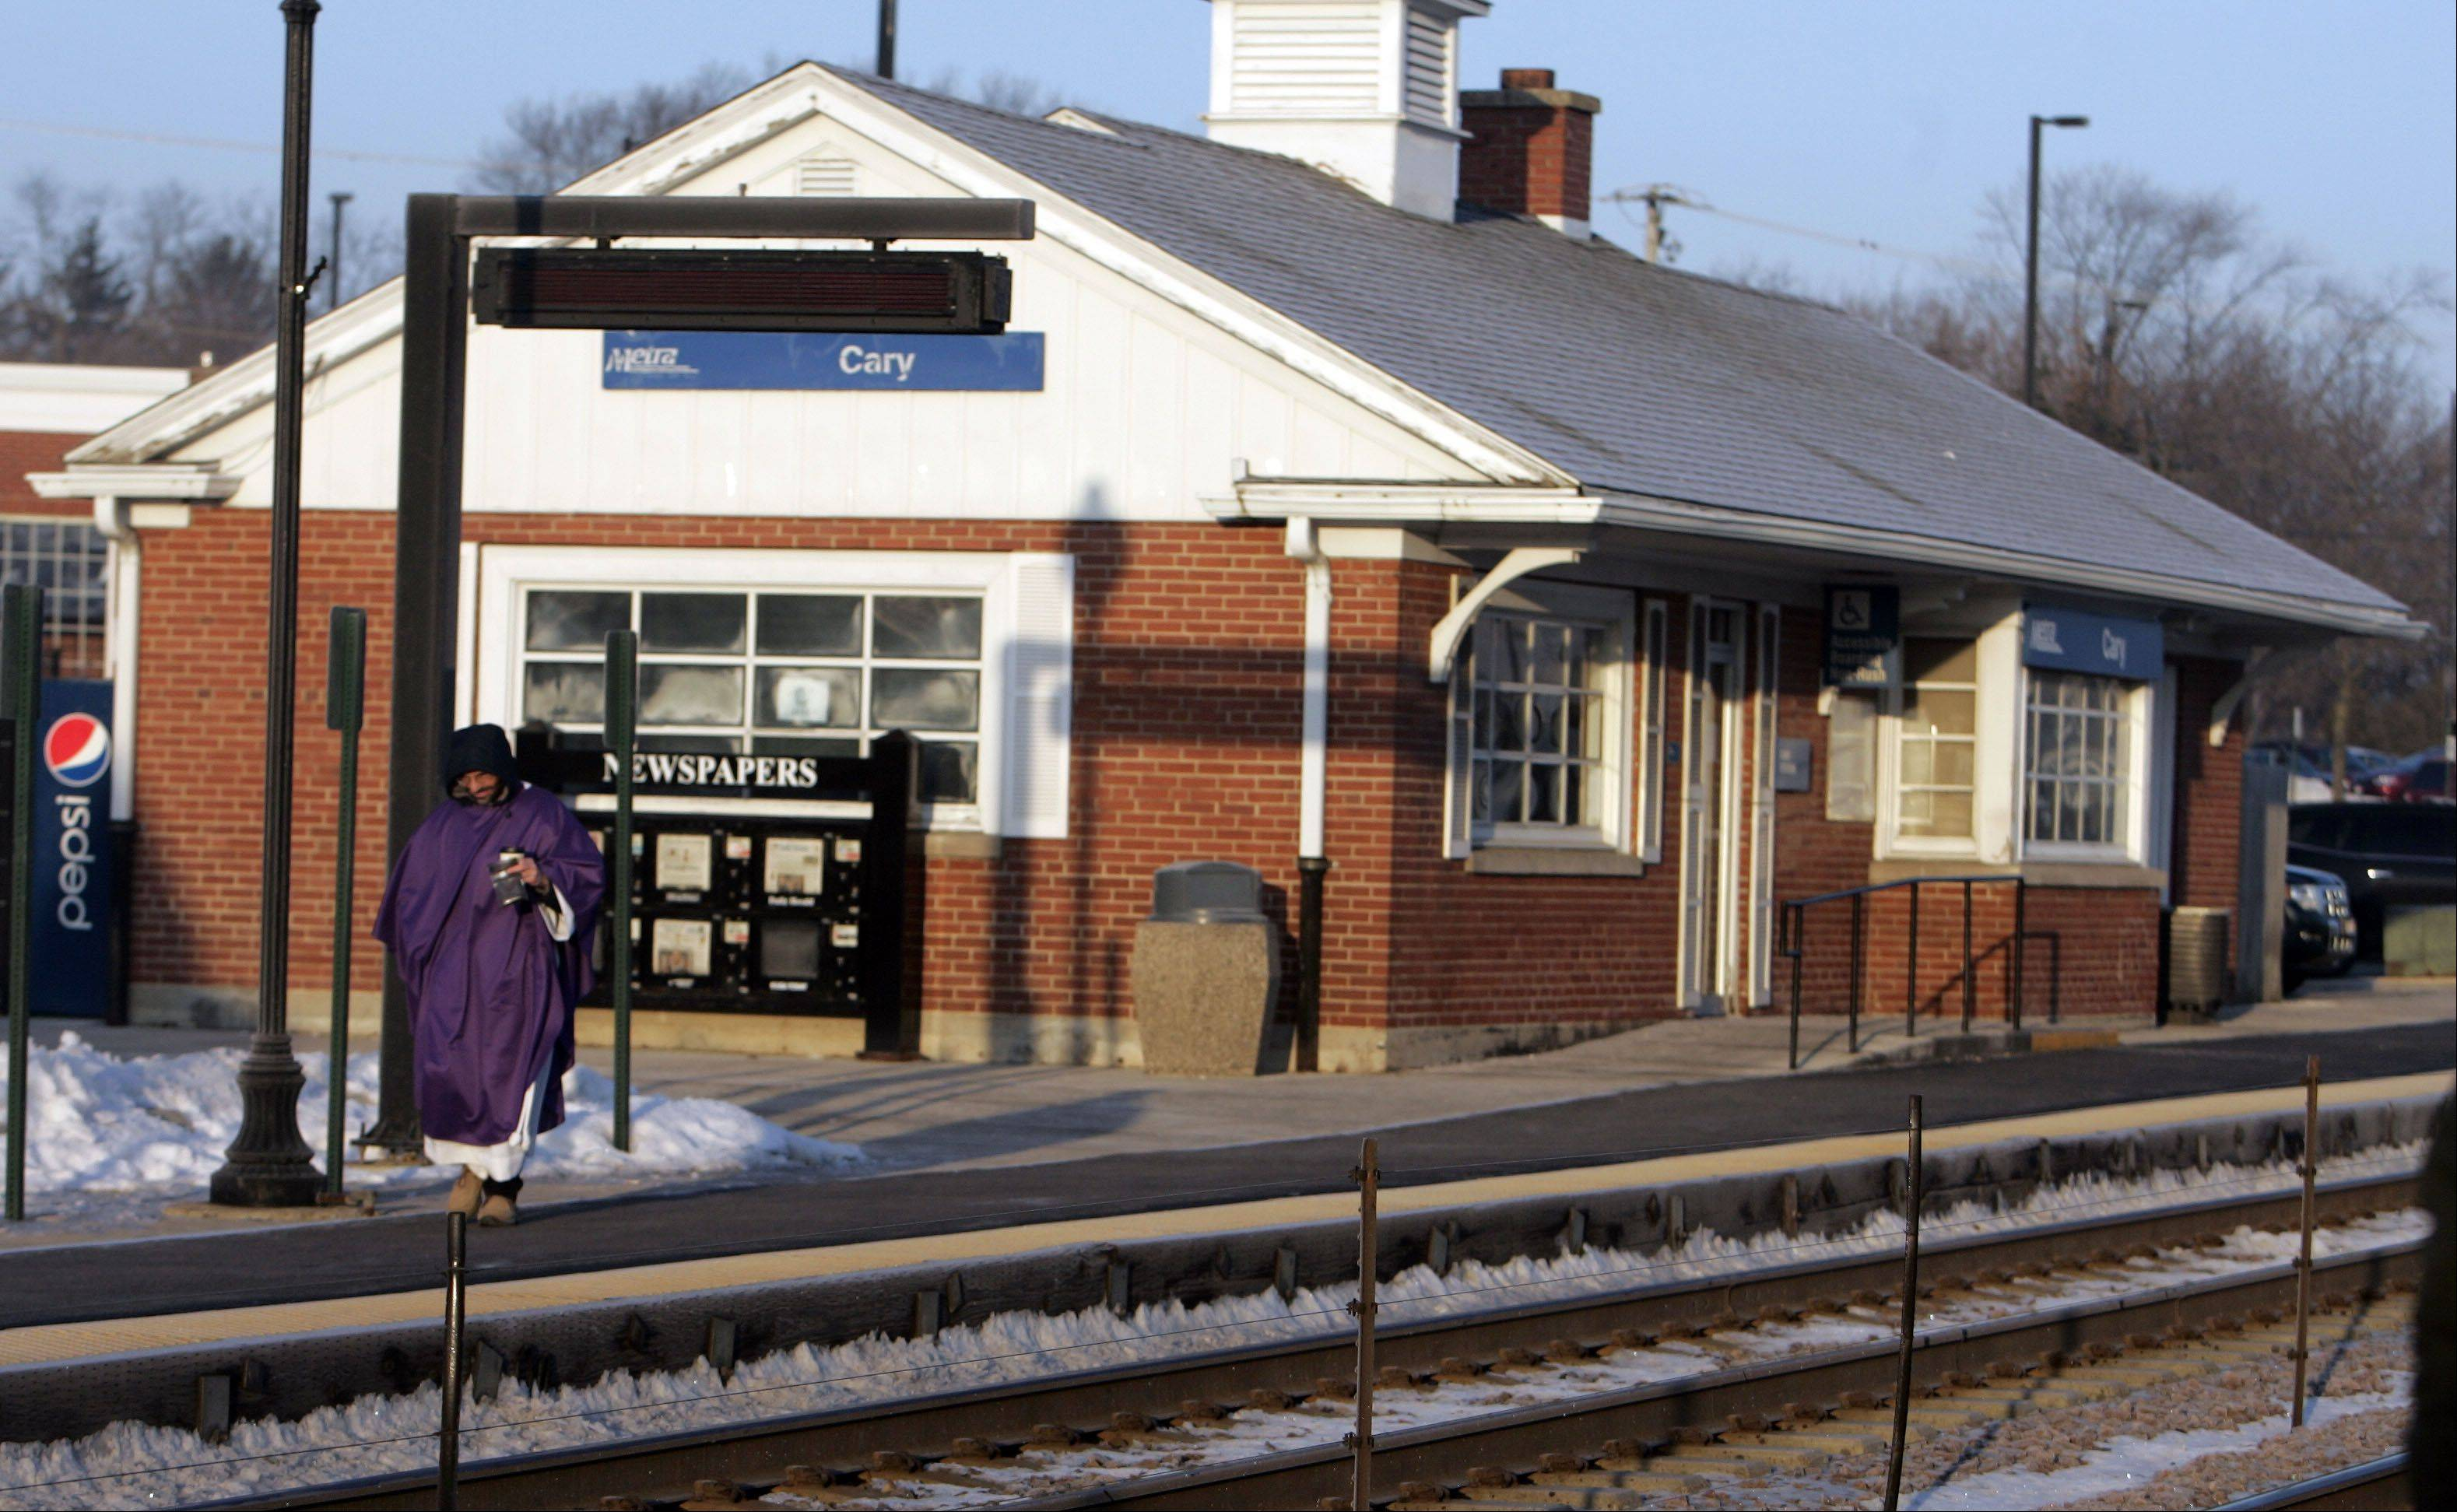 Father Manny Borg of St. Nicholas Episcopal Church in Elk Grove Village makes his way to the train tracks to disperse ashes to commuters at the Cary Metra Station Wednesday February 13, 2013.